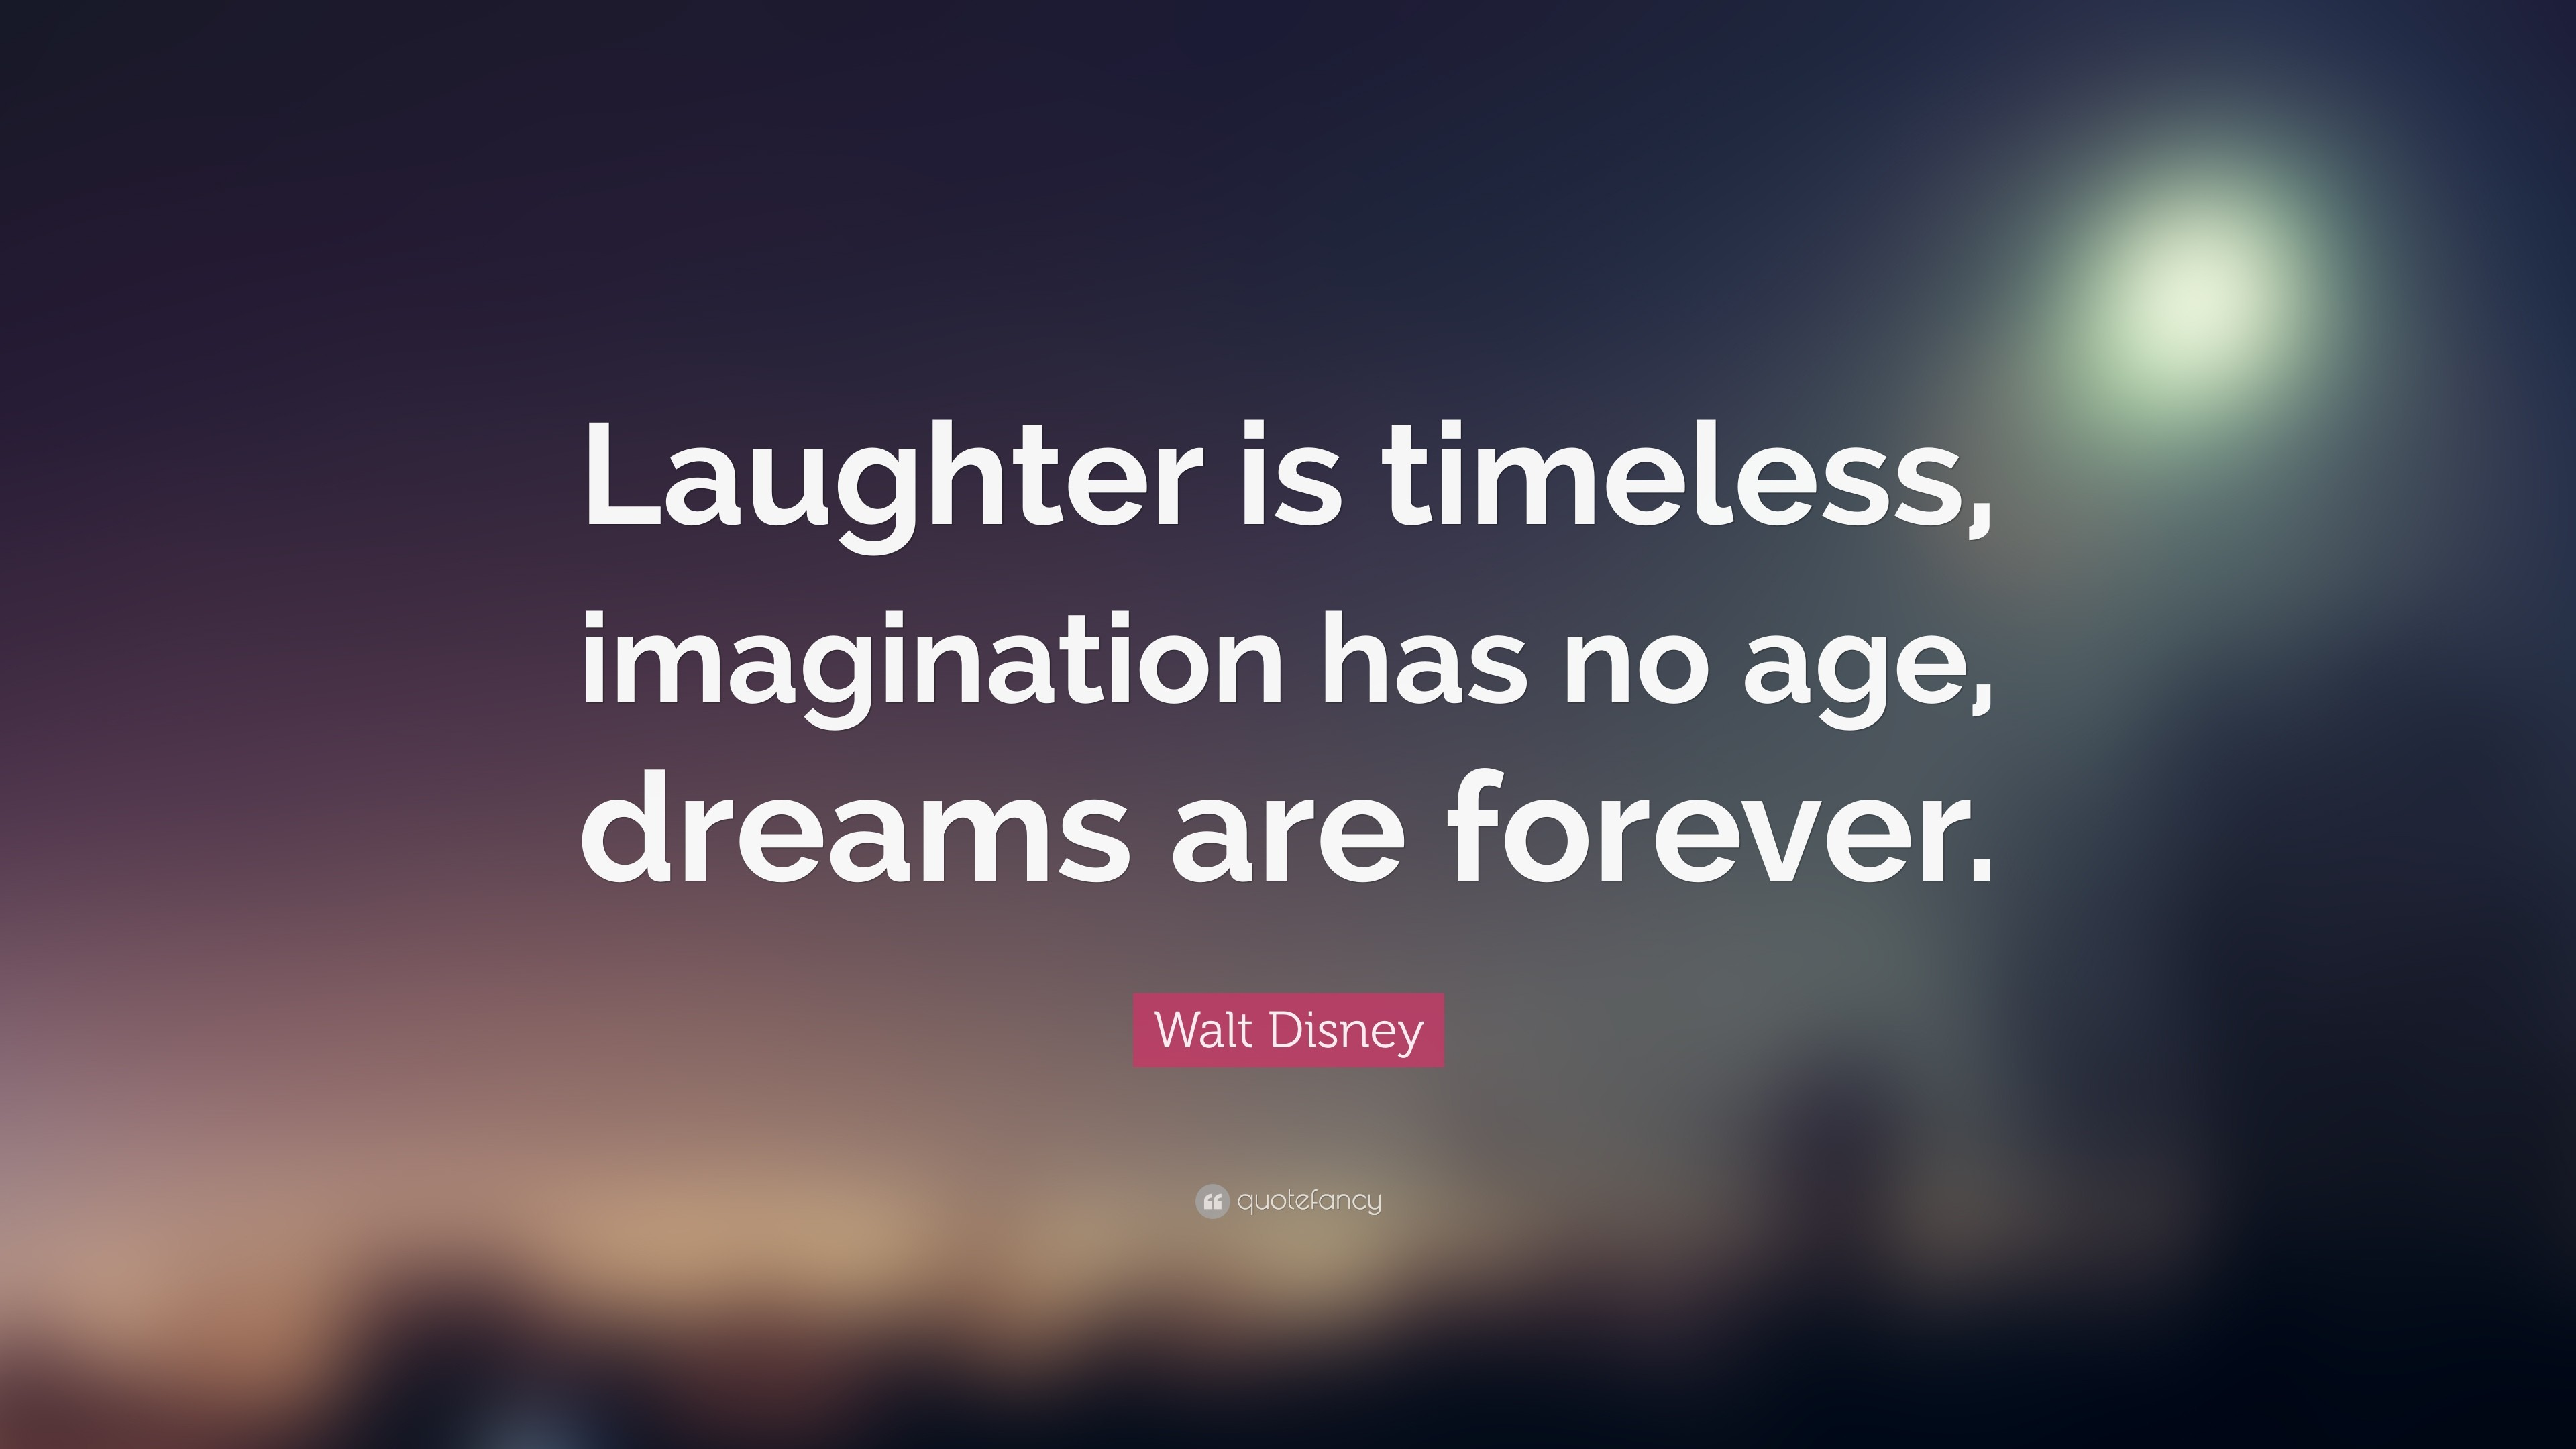 … iphone wallpaper wallpapersafari; walt disney quote laughter is  timeless imagination has no age …